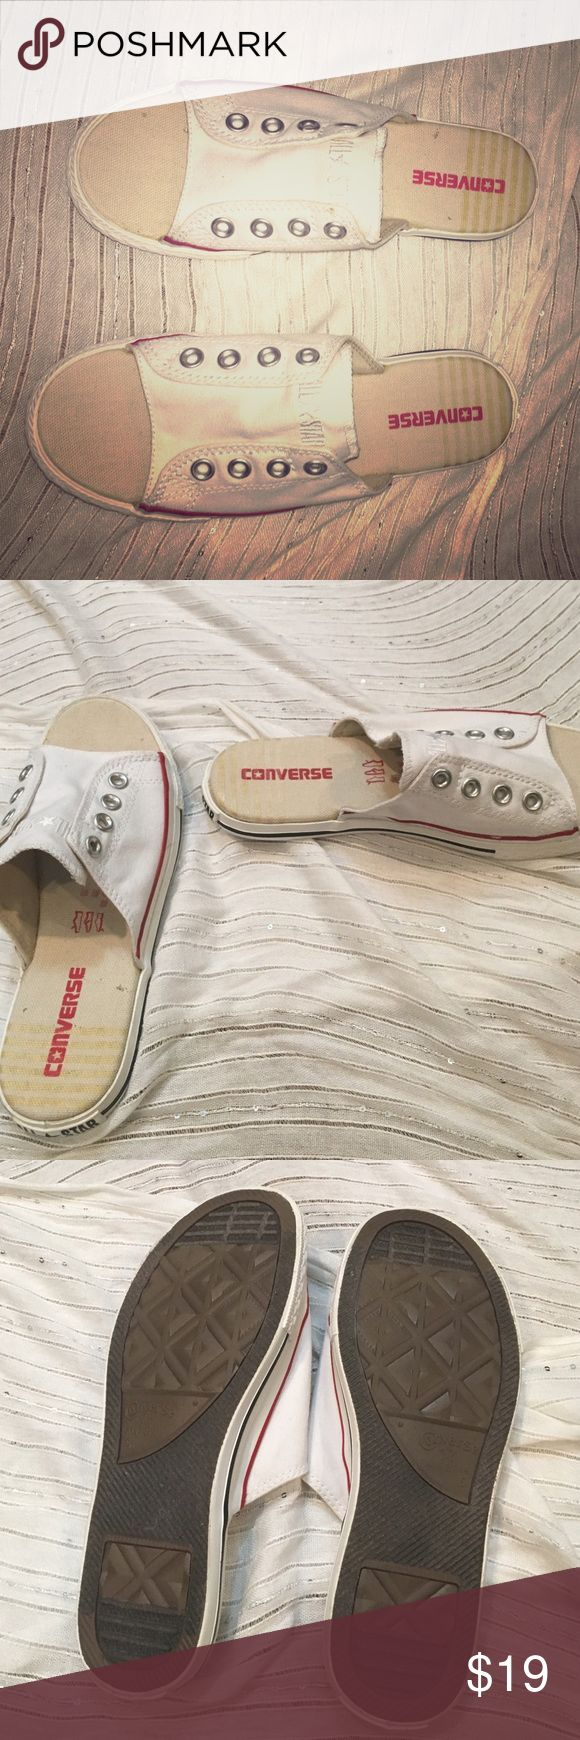 Converse slip on sneakers Comfortable and sporty slip on converse sneakers. Perfect for those spring and summer days. Worn once Converse Shoes Sneakers